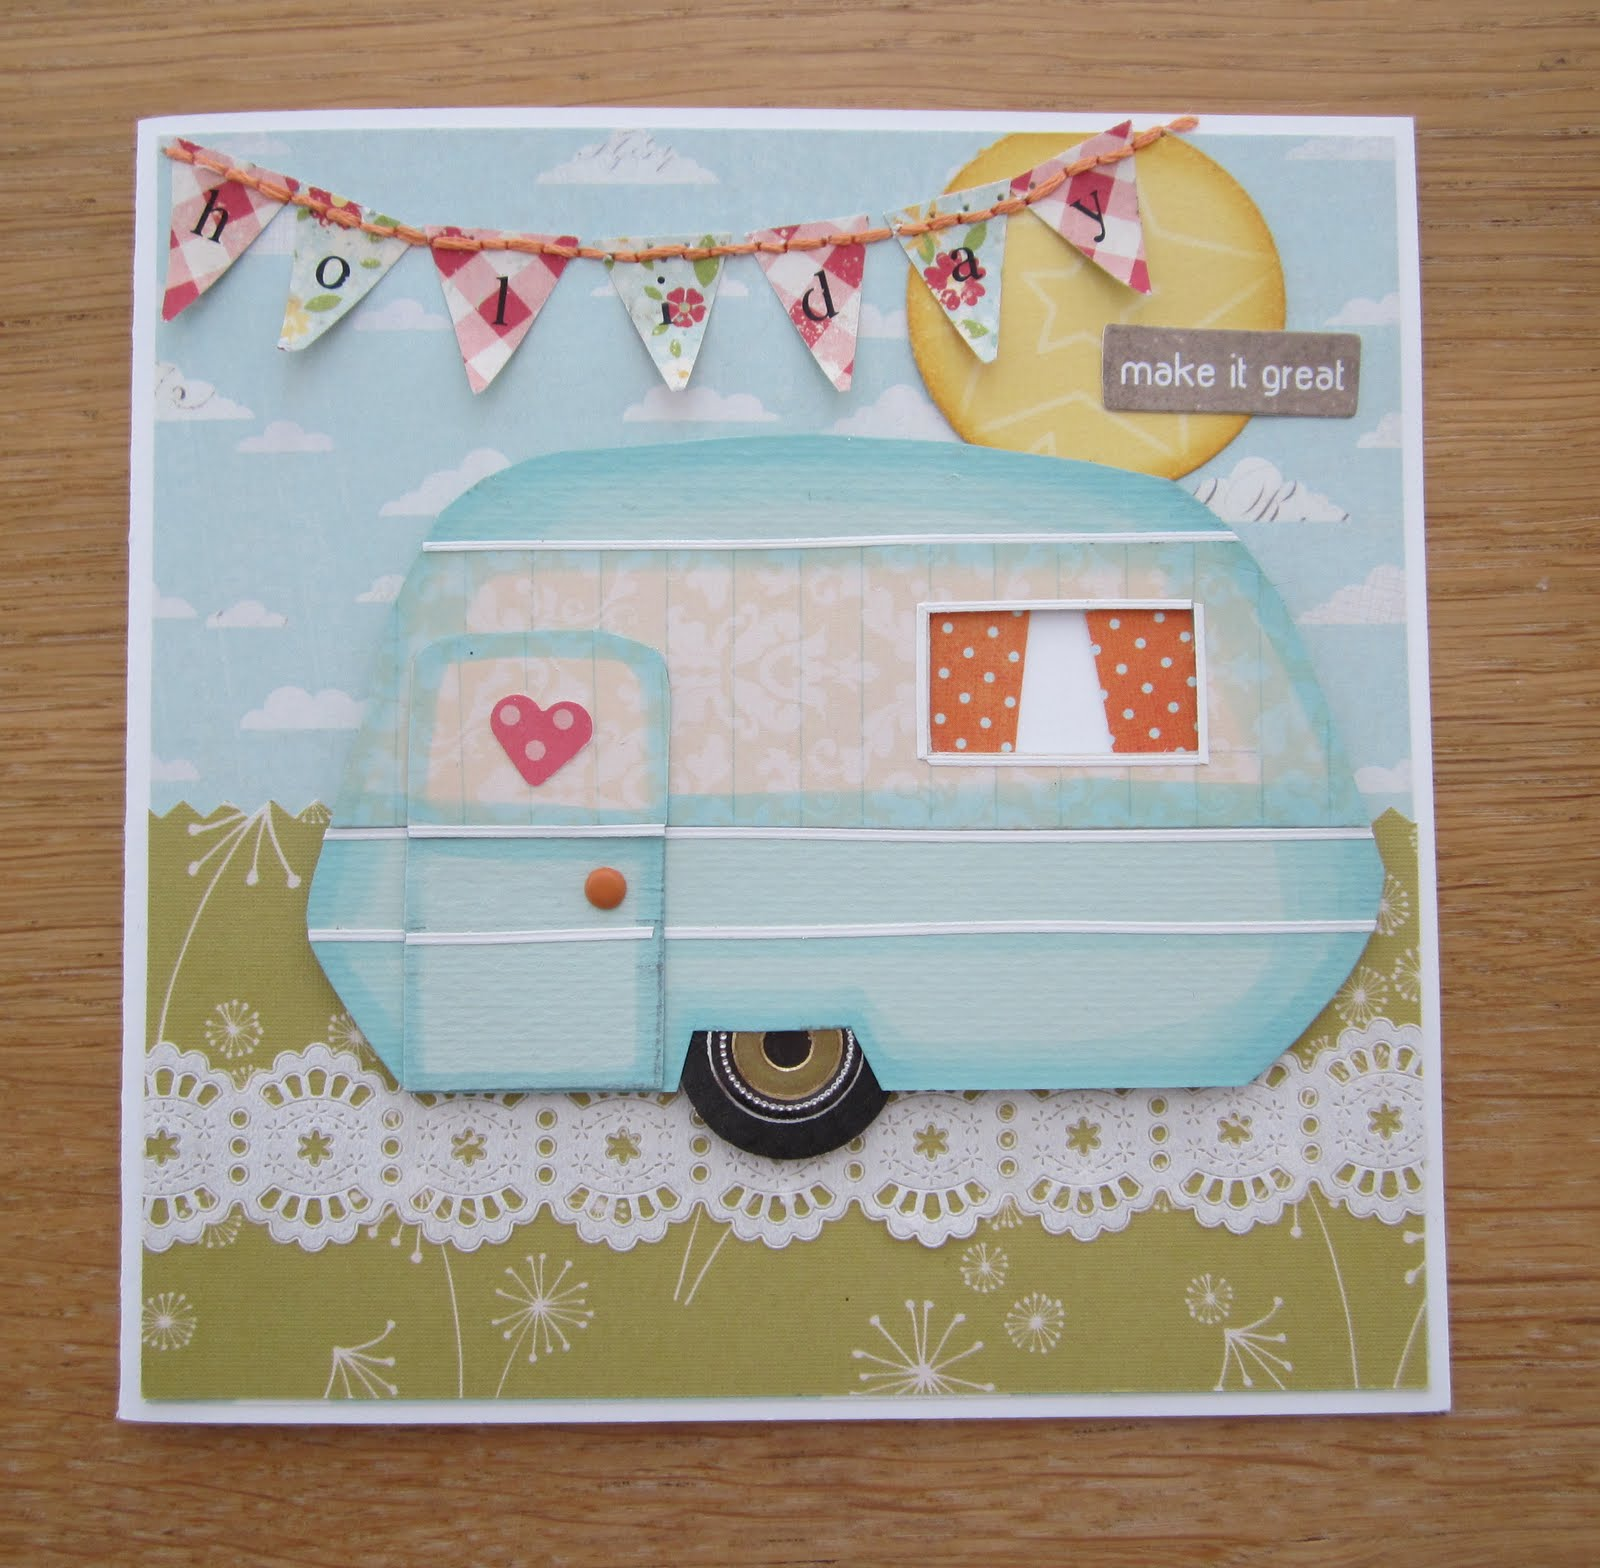 Daring Cardmakers Challenge - Wish You Were Here! | Dolly Mixtures